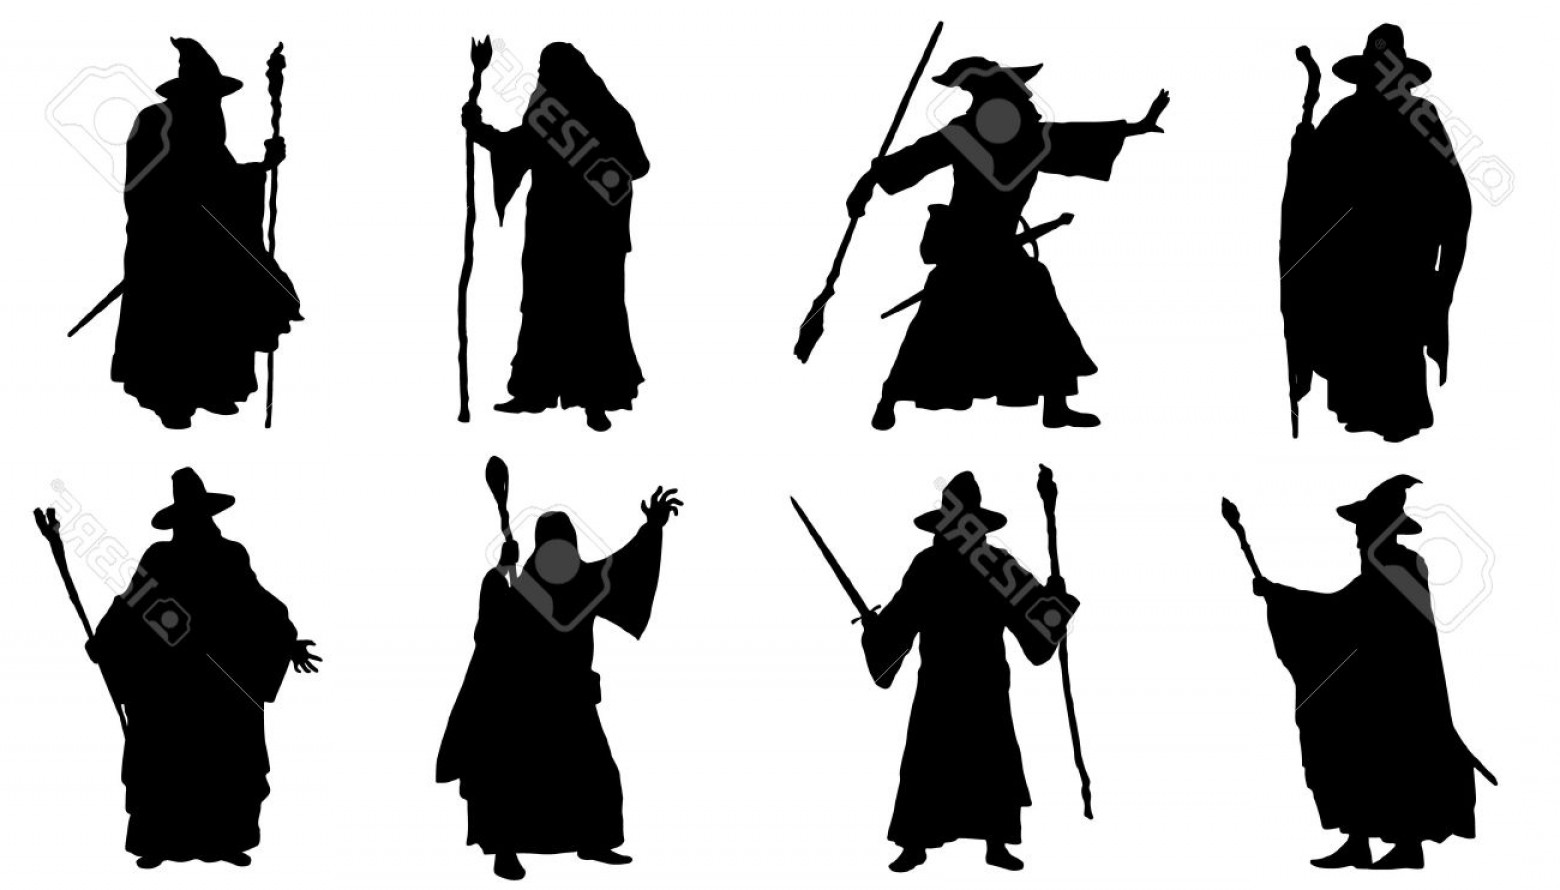 Wizard Silhouette Vector: Photostock Vector Mage Silhouettes On The White Background